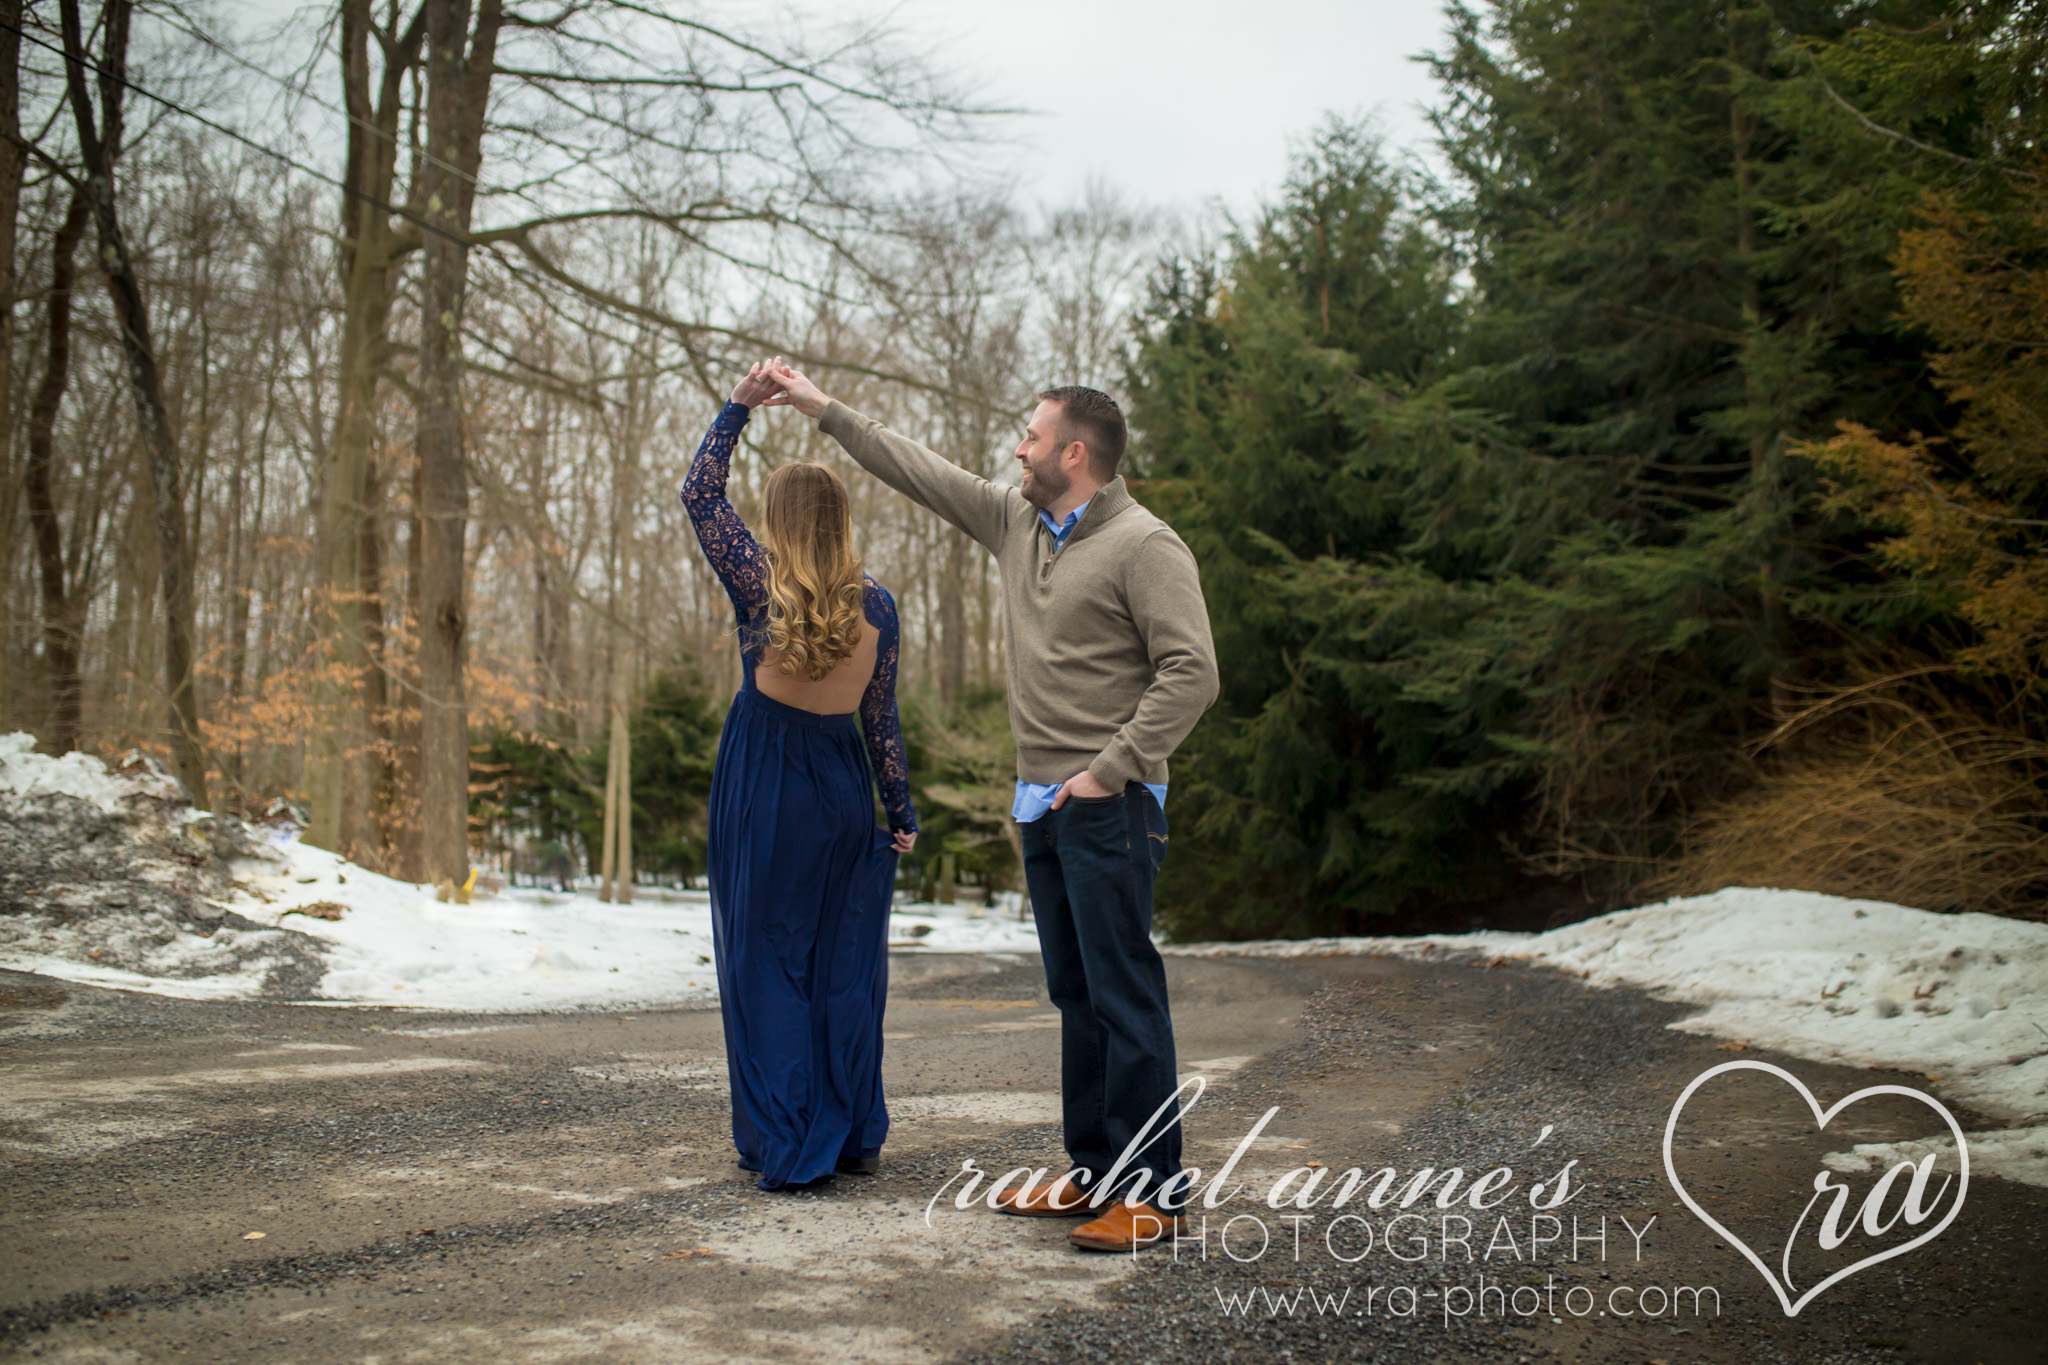 060-JKM-DUBOIS-PA-ENGAGEMENT-PHOTOGRAPHY.jpg